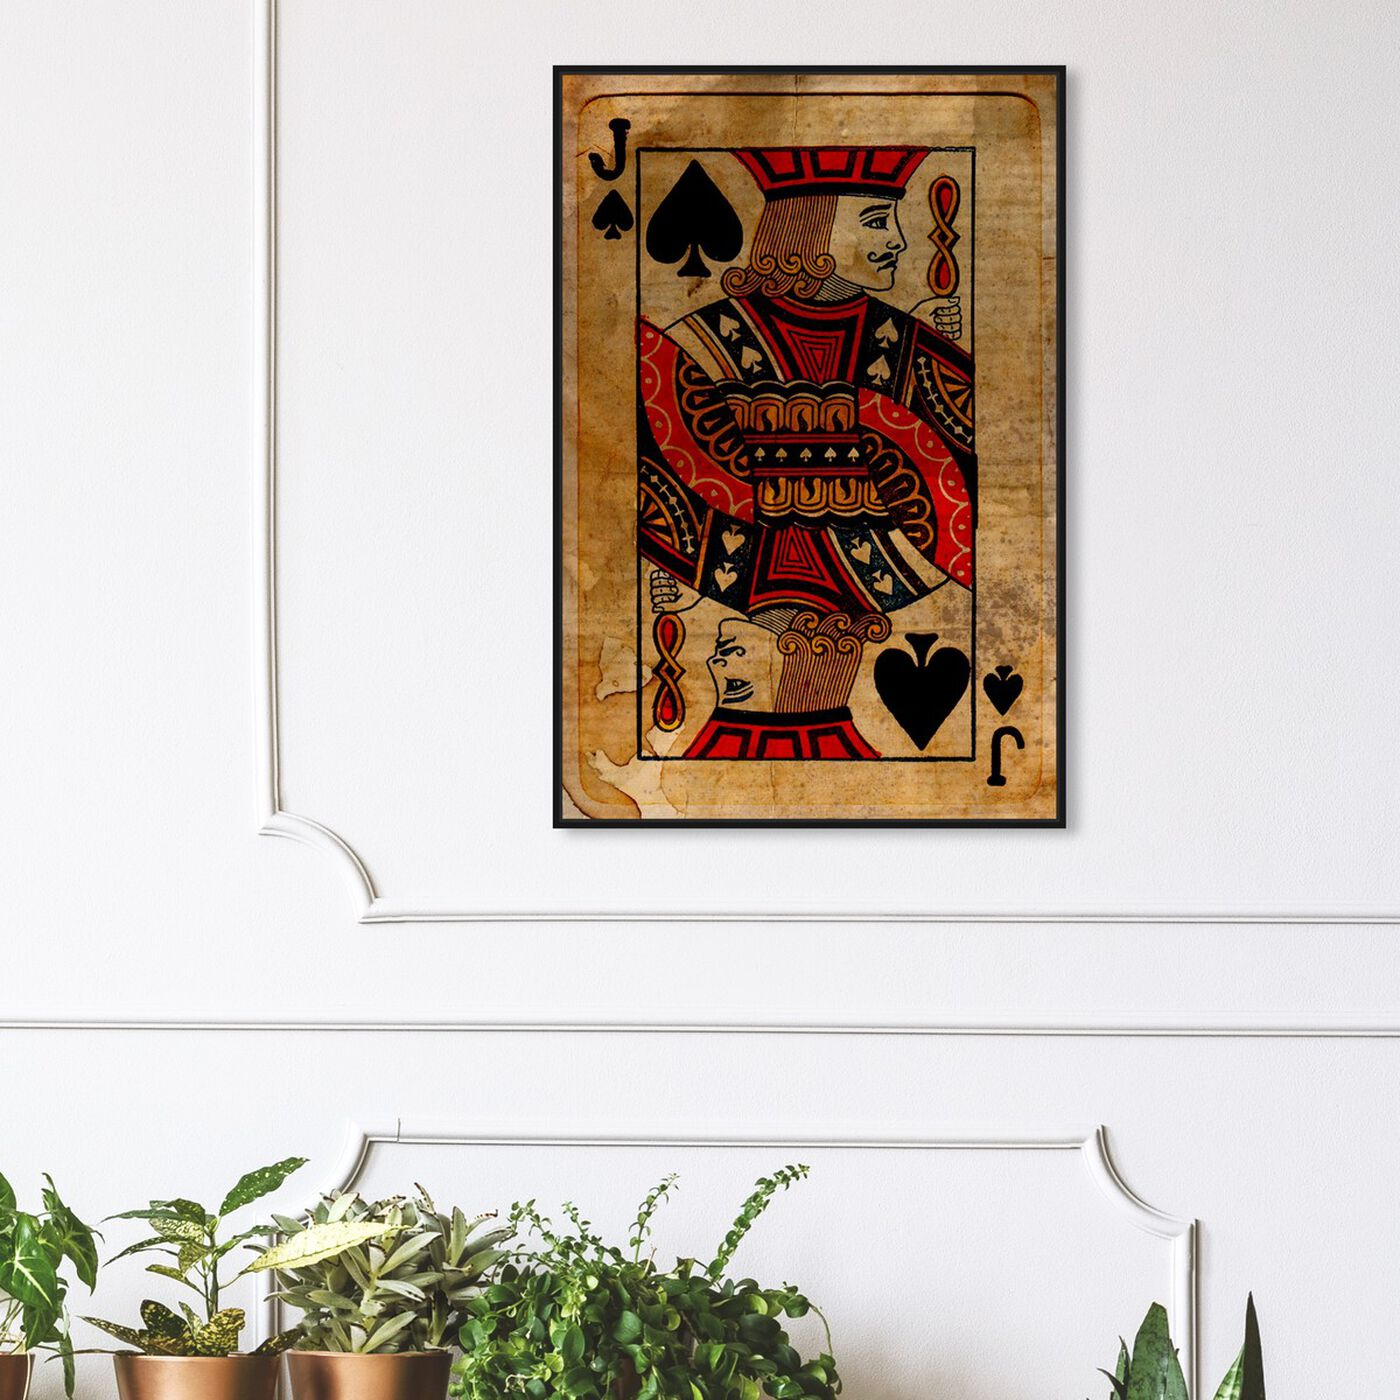 Hanging view of Jack of Spades featuring entertainment and hobbies and playing cards art.